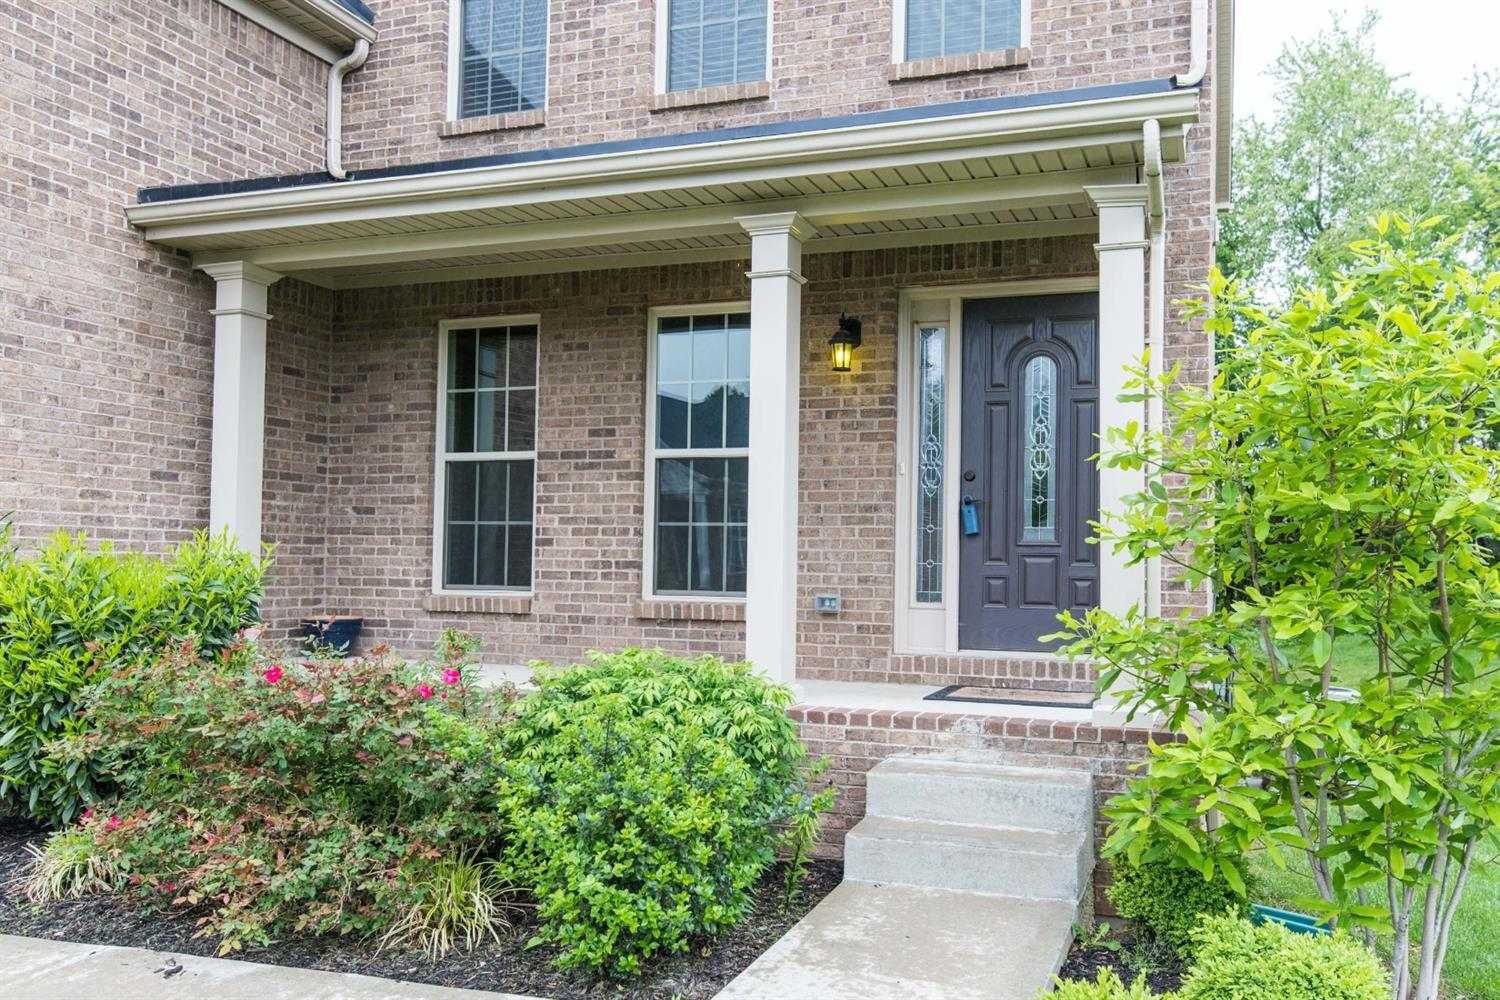 Home For Sale at 832 Lochmere Pl, Lexington, KY 40509